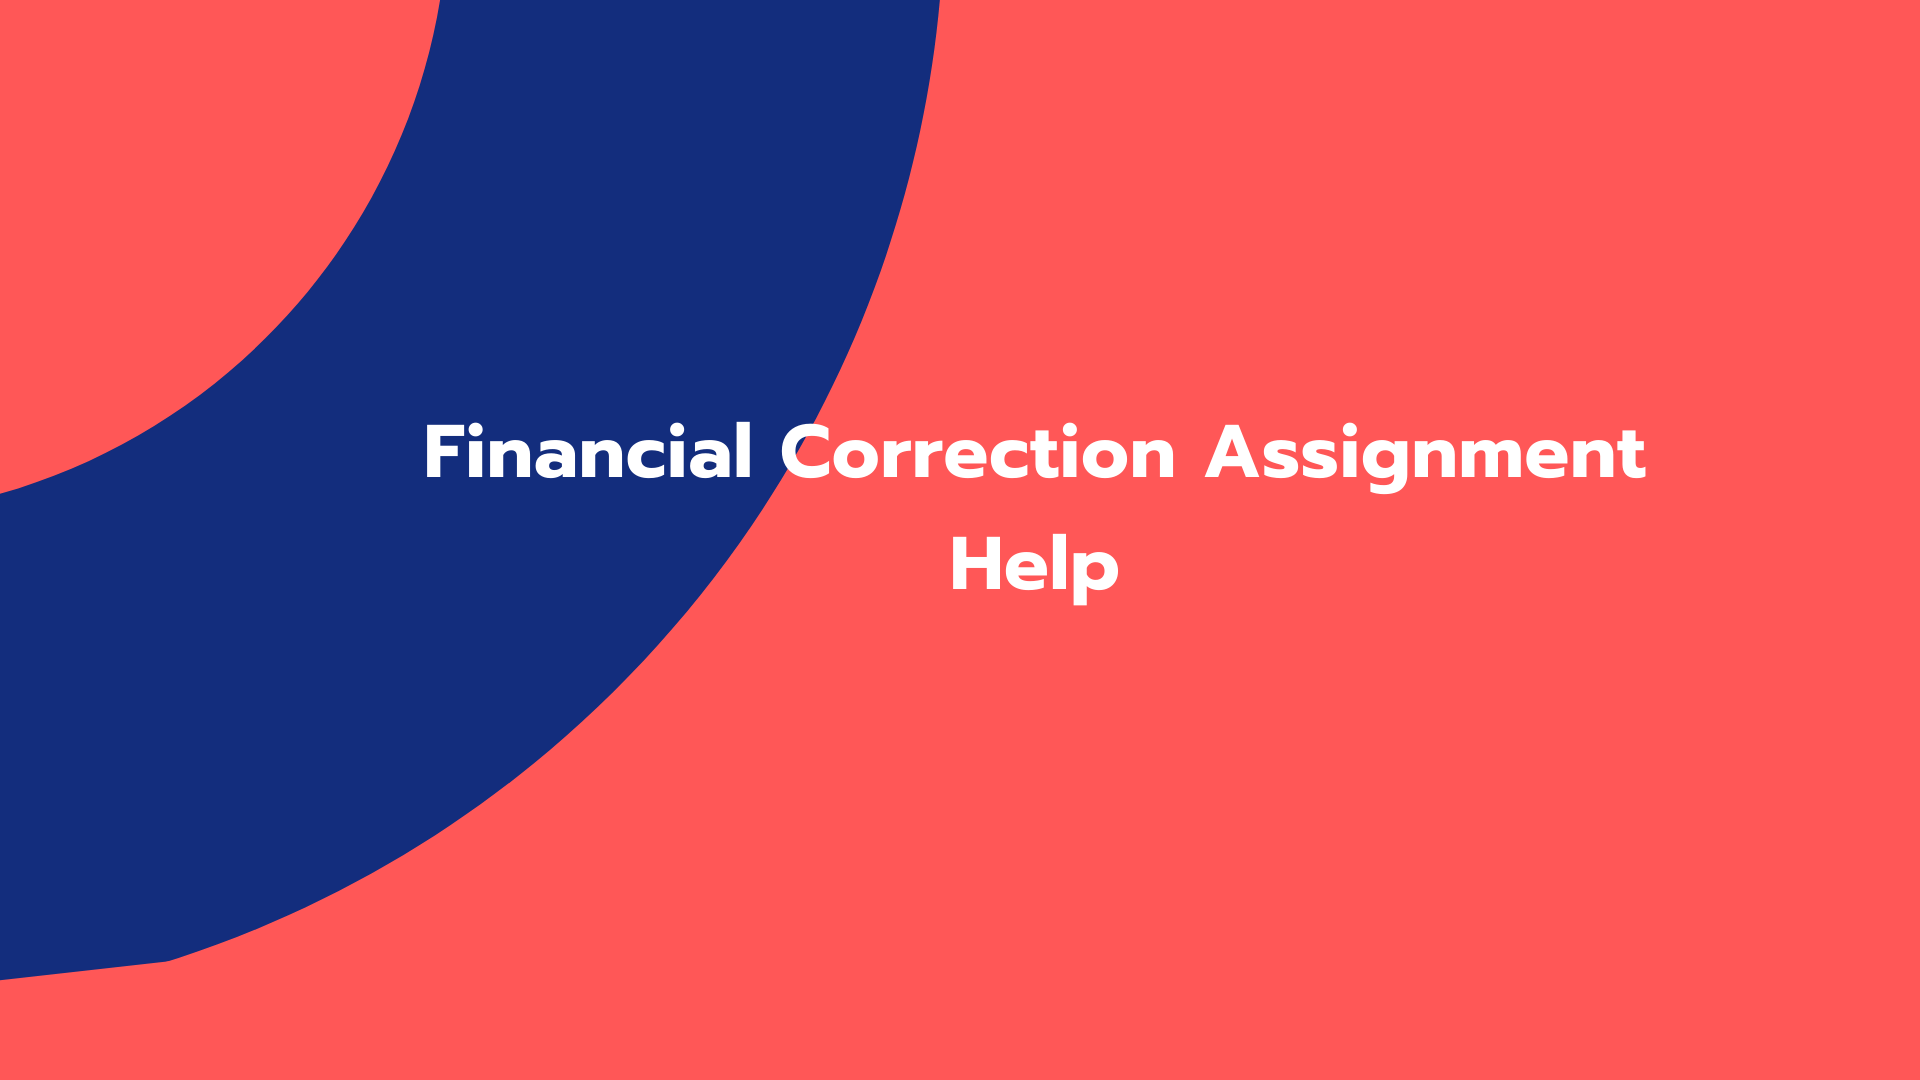 Financial Correction Assignment Help